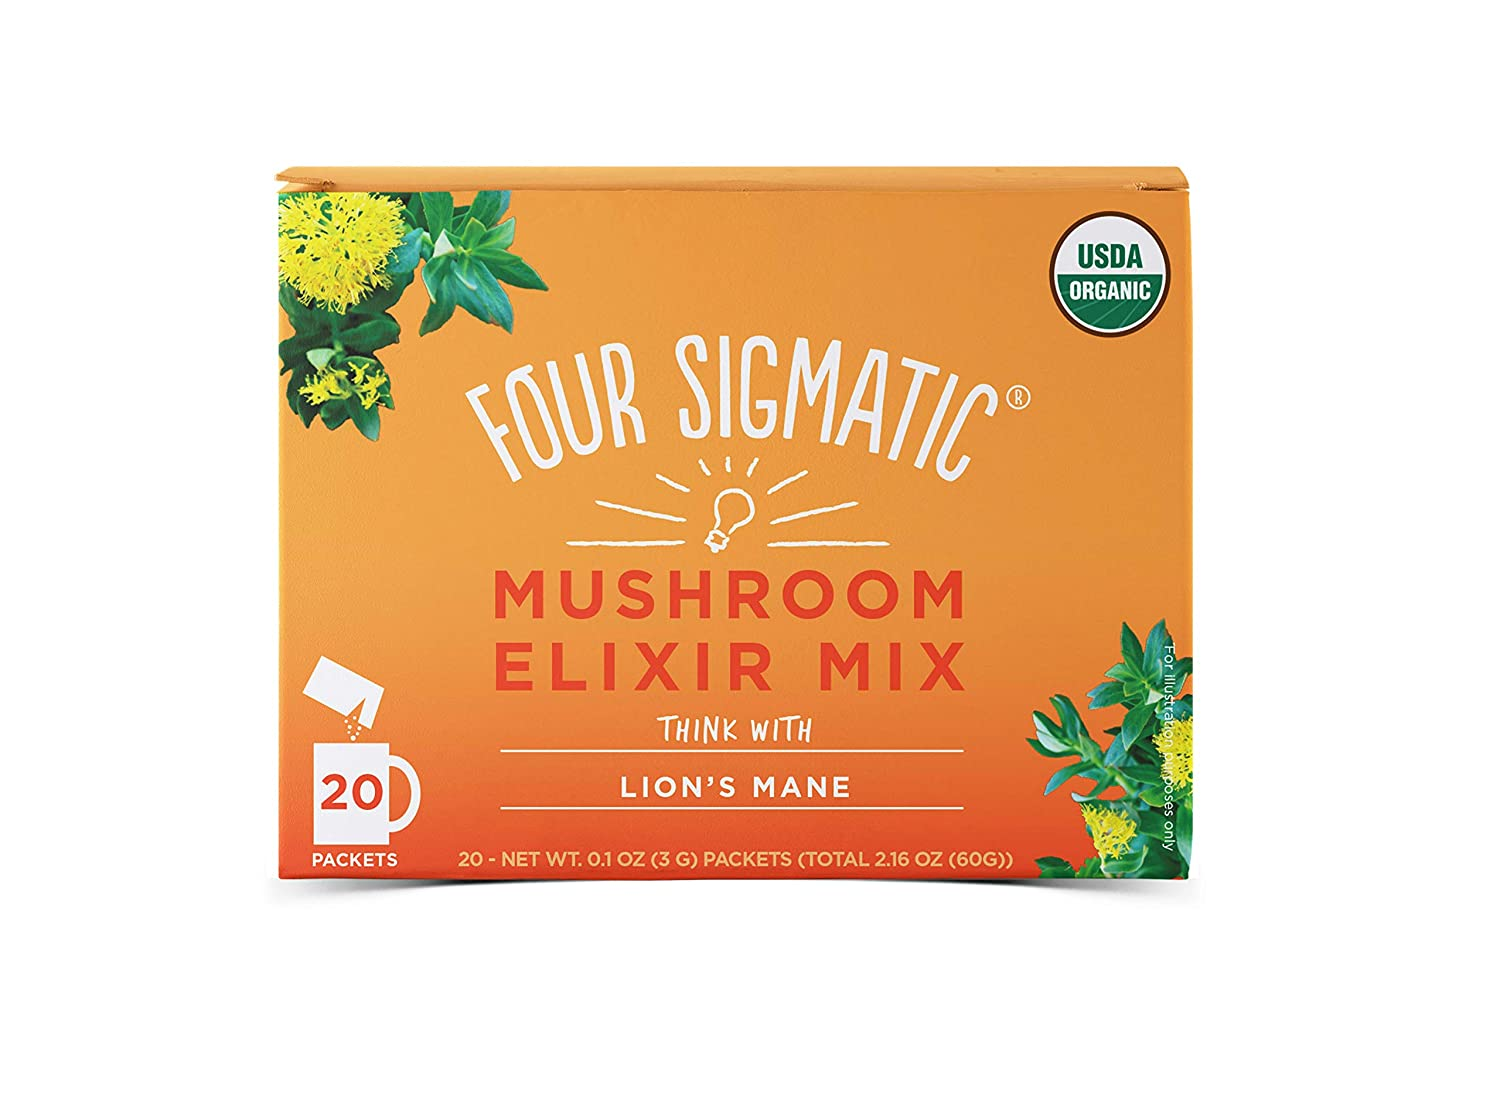 Four Sigmatic Organic Mushroom Elixir Mix with Lion s Mane and Antioxidants for Concentration Focus, Vegan, Paleo, 0.1 Ounce 20 Count